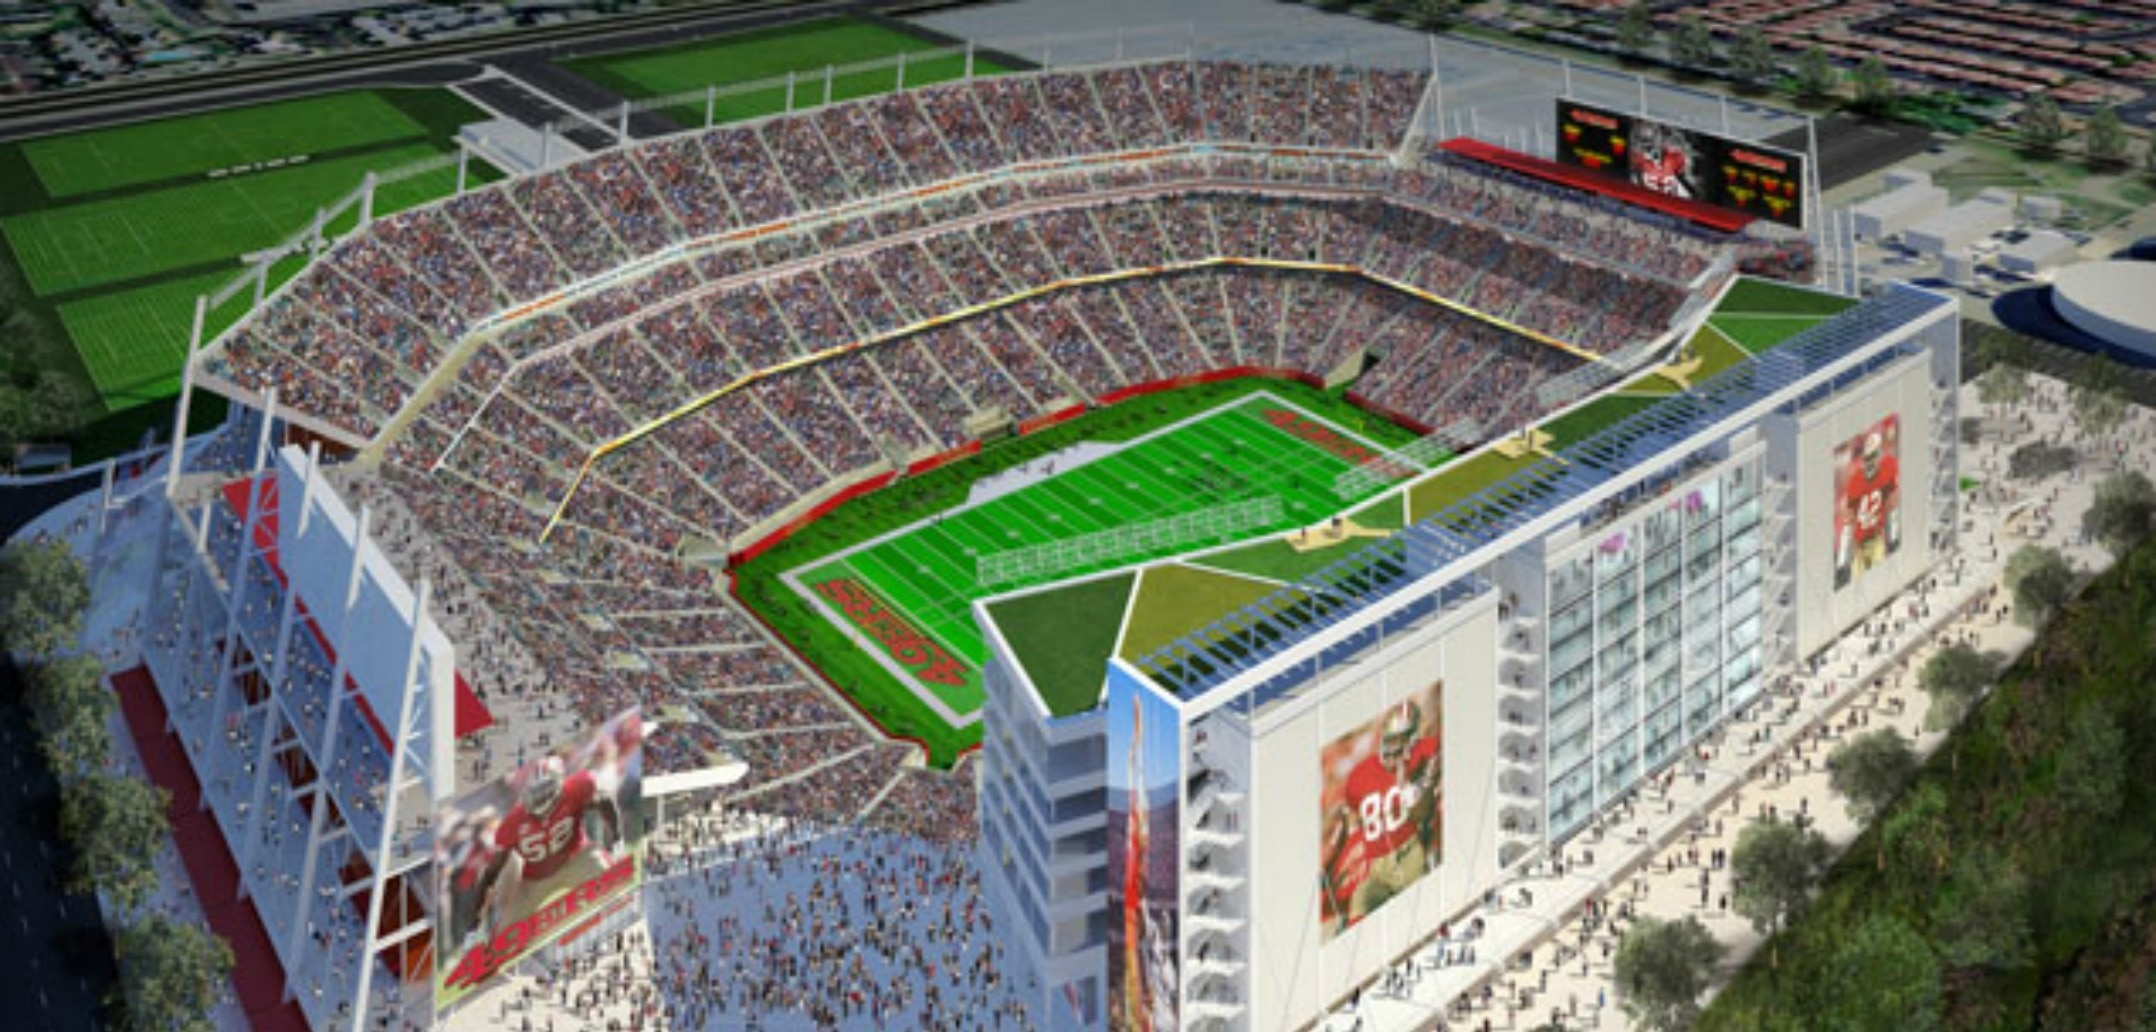 Fantasy Football Sports Lounge Offered At 49ers New Levi